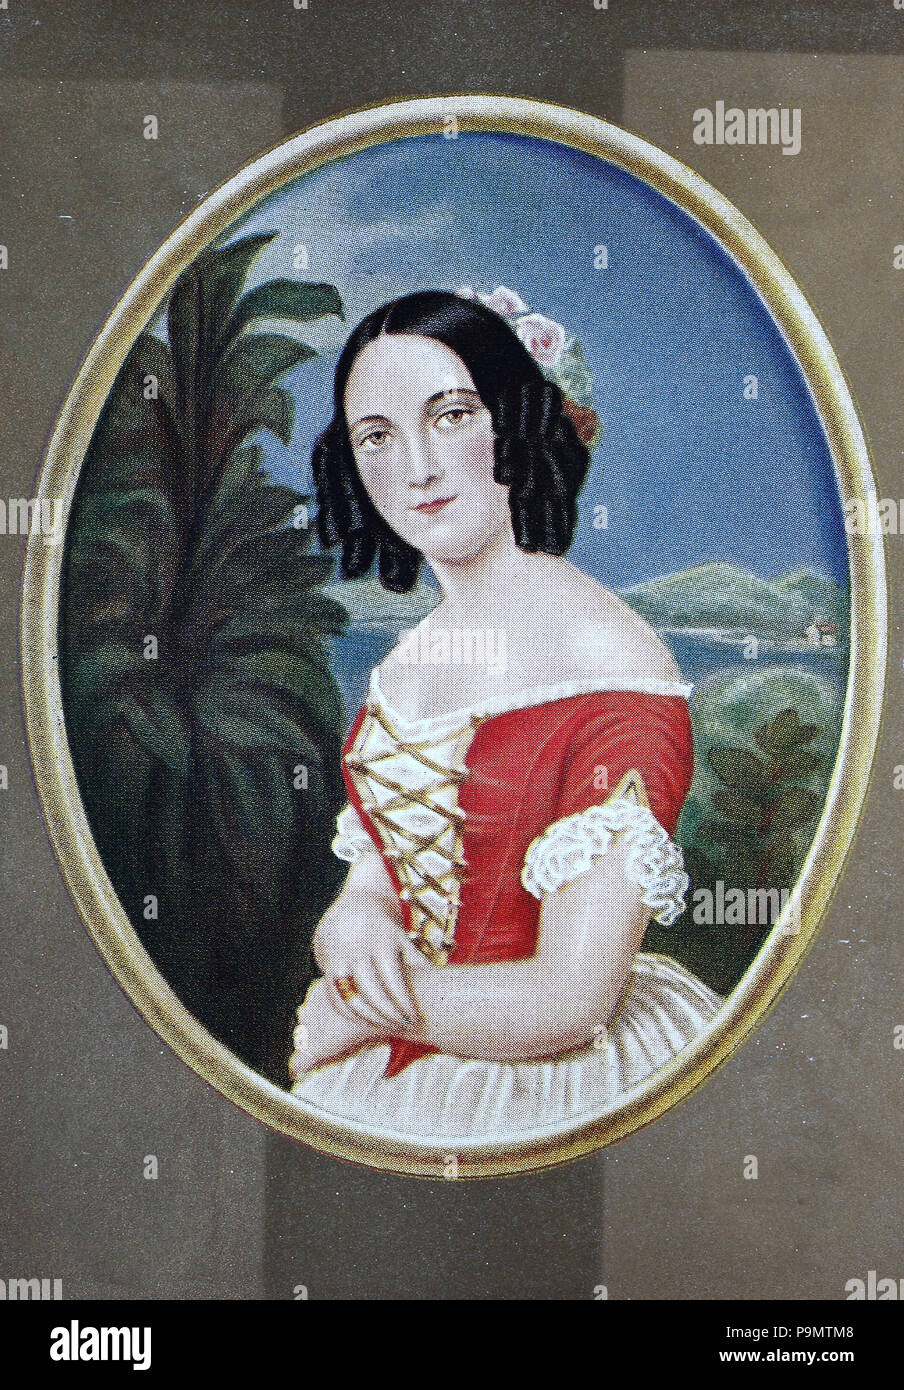 Karoline Stelzner, 1813 - 1875, digital improved reproduction of an original print from the year 1900 - Stock Image